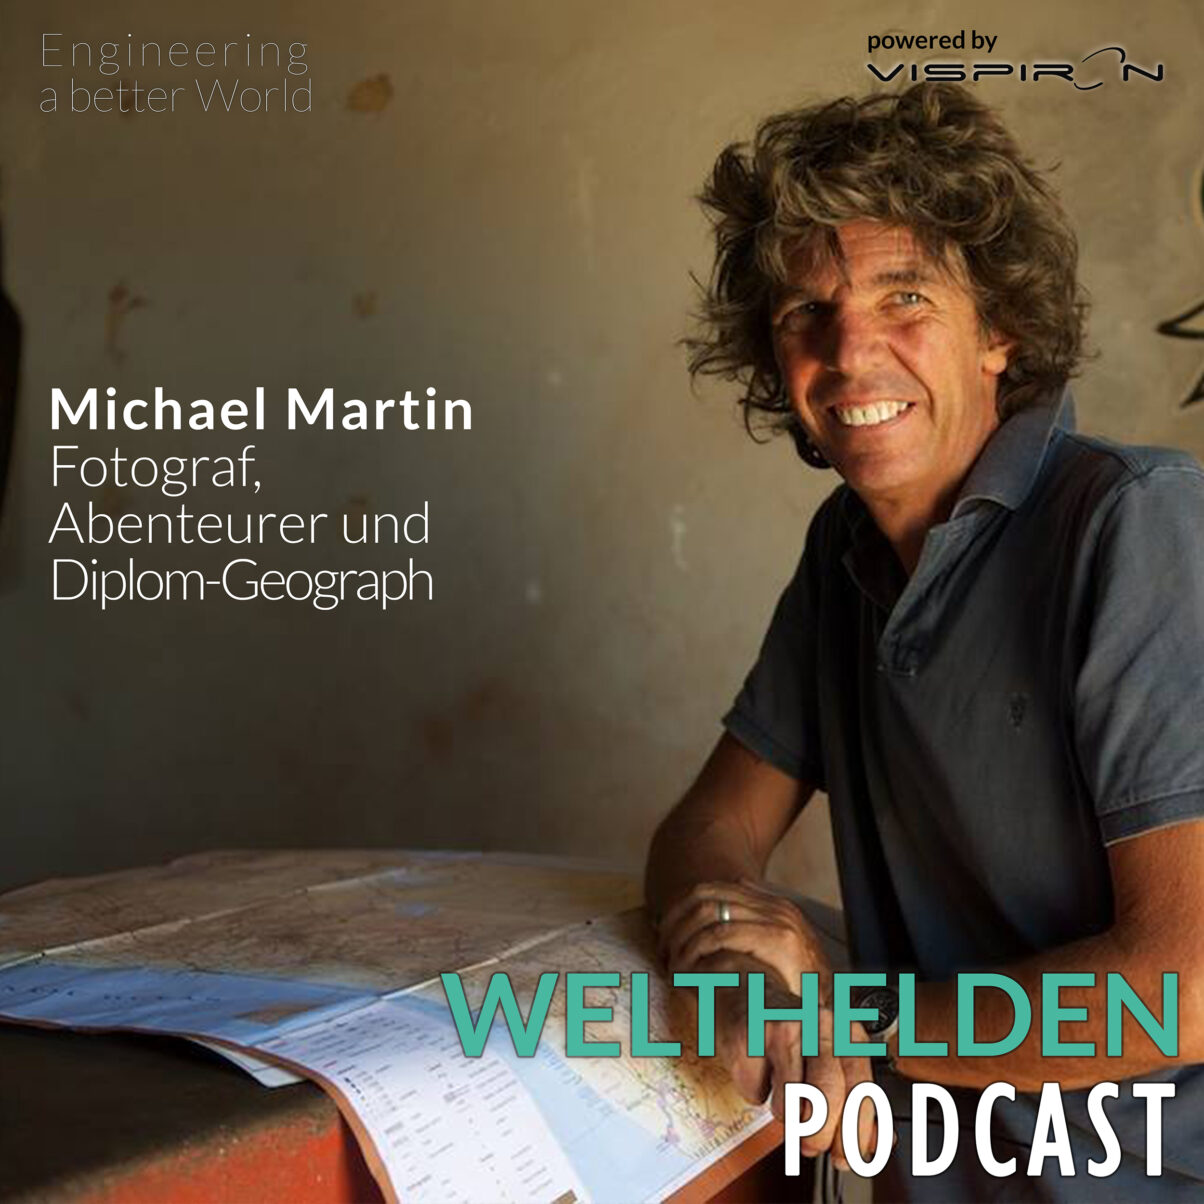 Welthelden_Podcast_VISPIRON_SYSTEMS_Michael_Martin